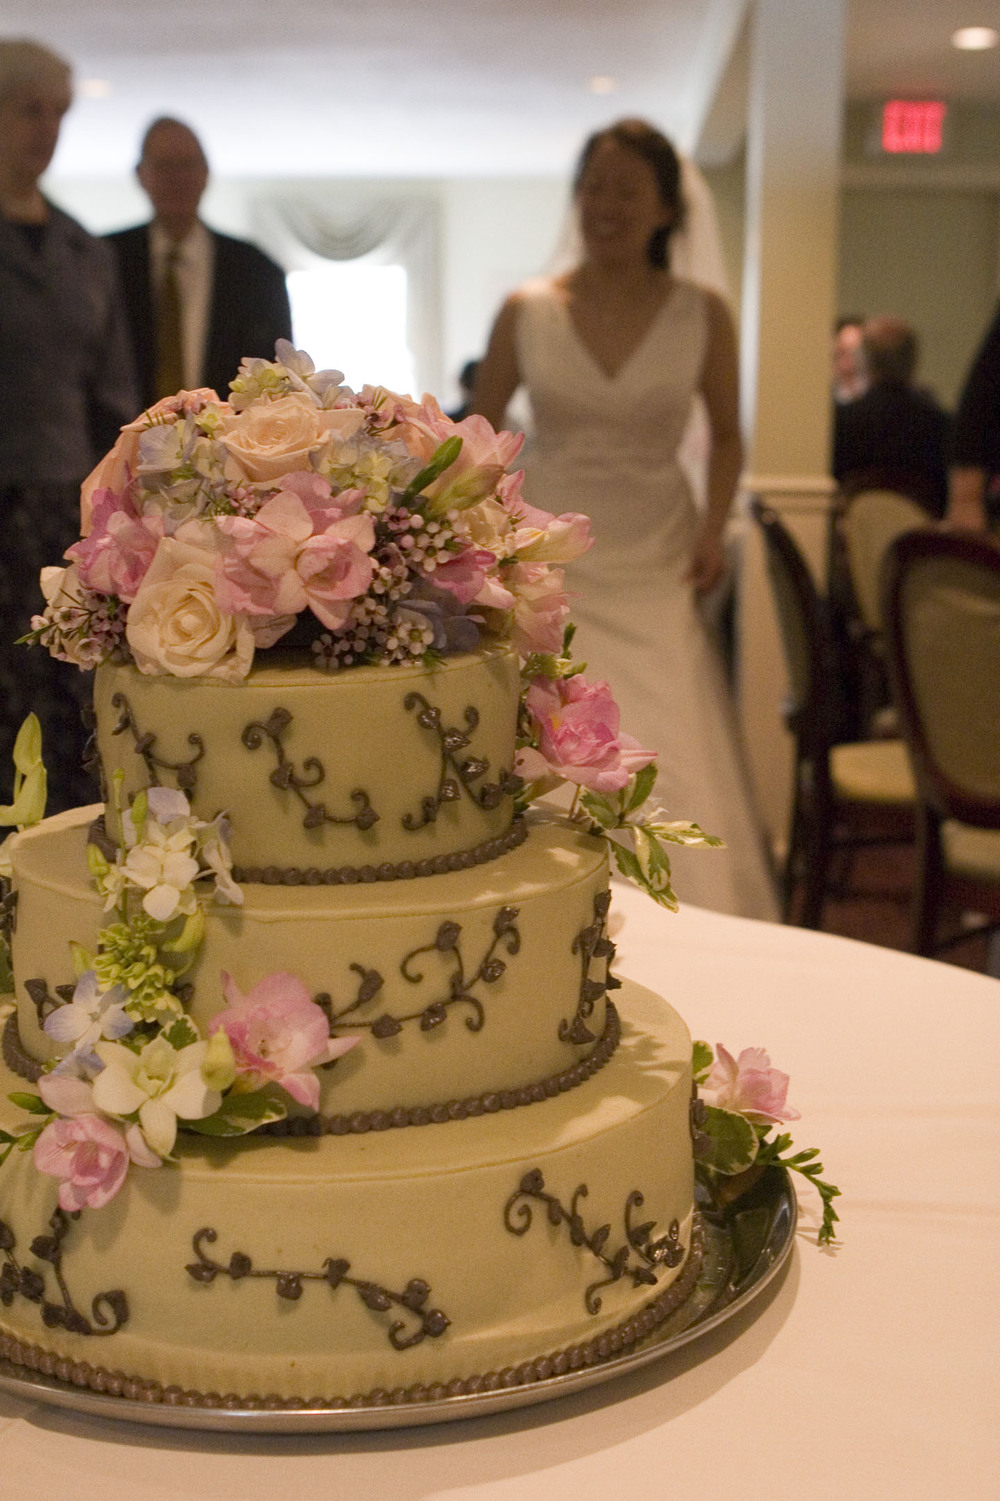 Wedding Cake - Chocolate on White w Flowers.jpg